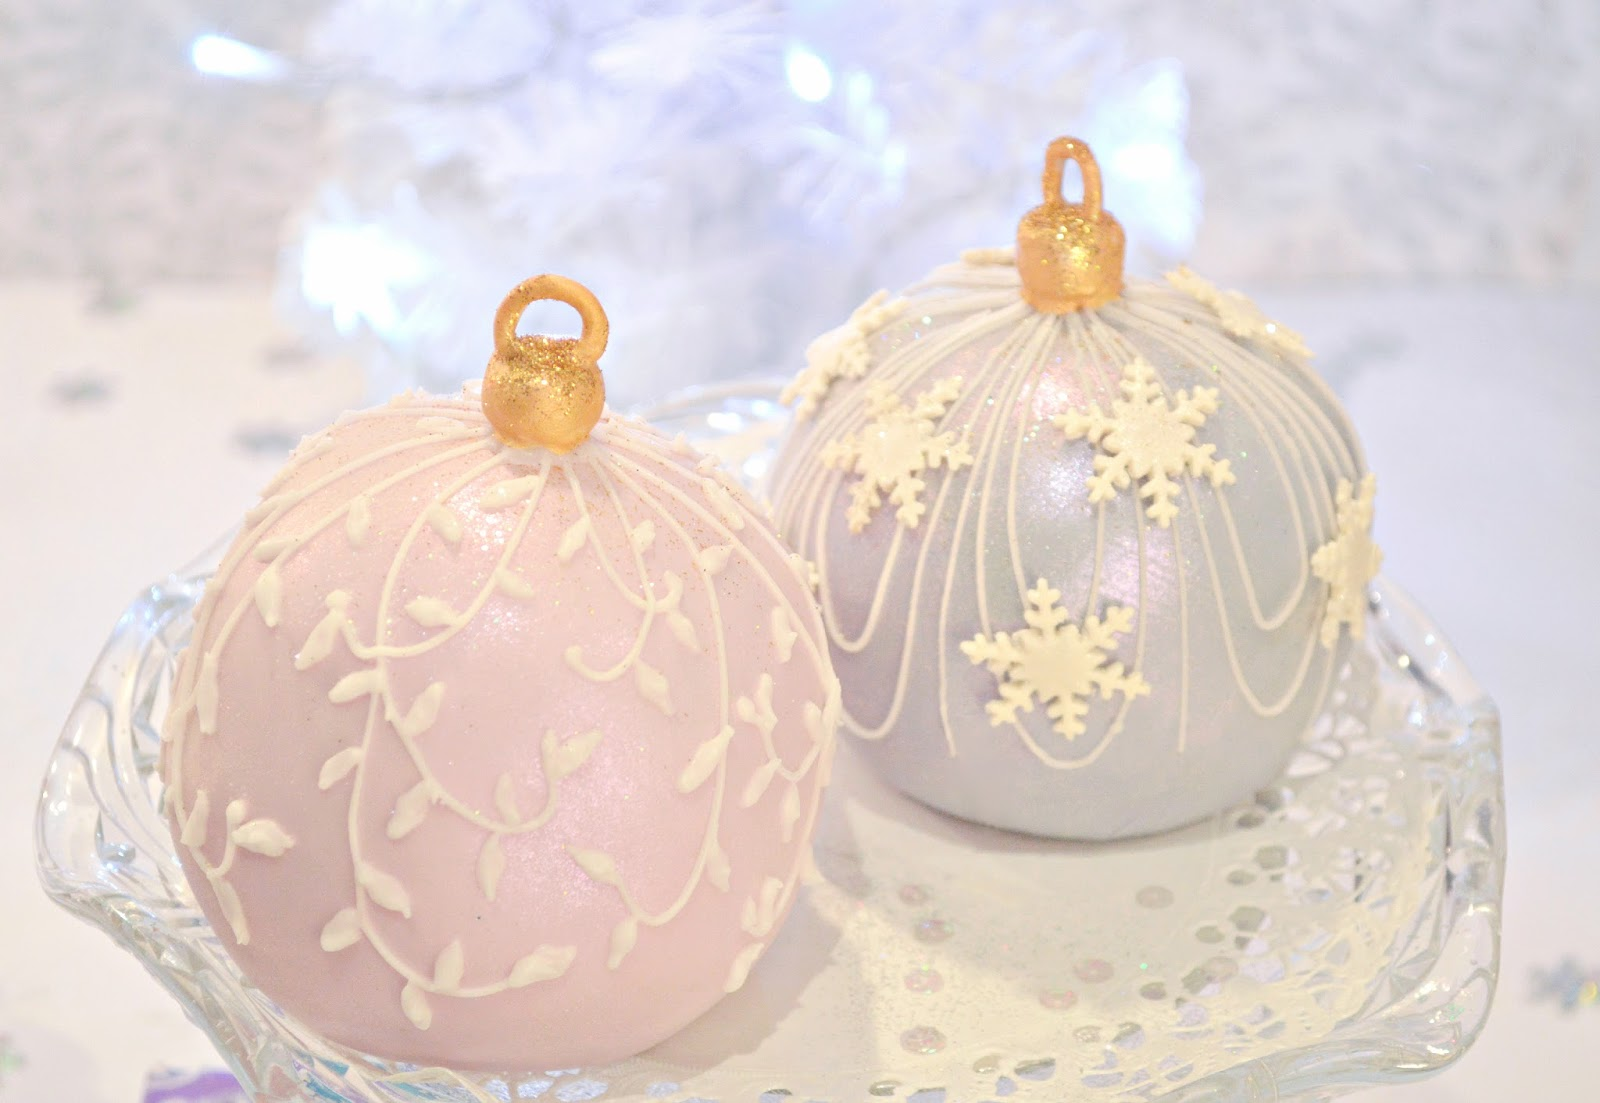 Christmas Bauble Cake Images : Christmassy Bauble Cakes Cherie Kelly